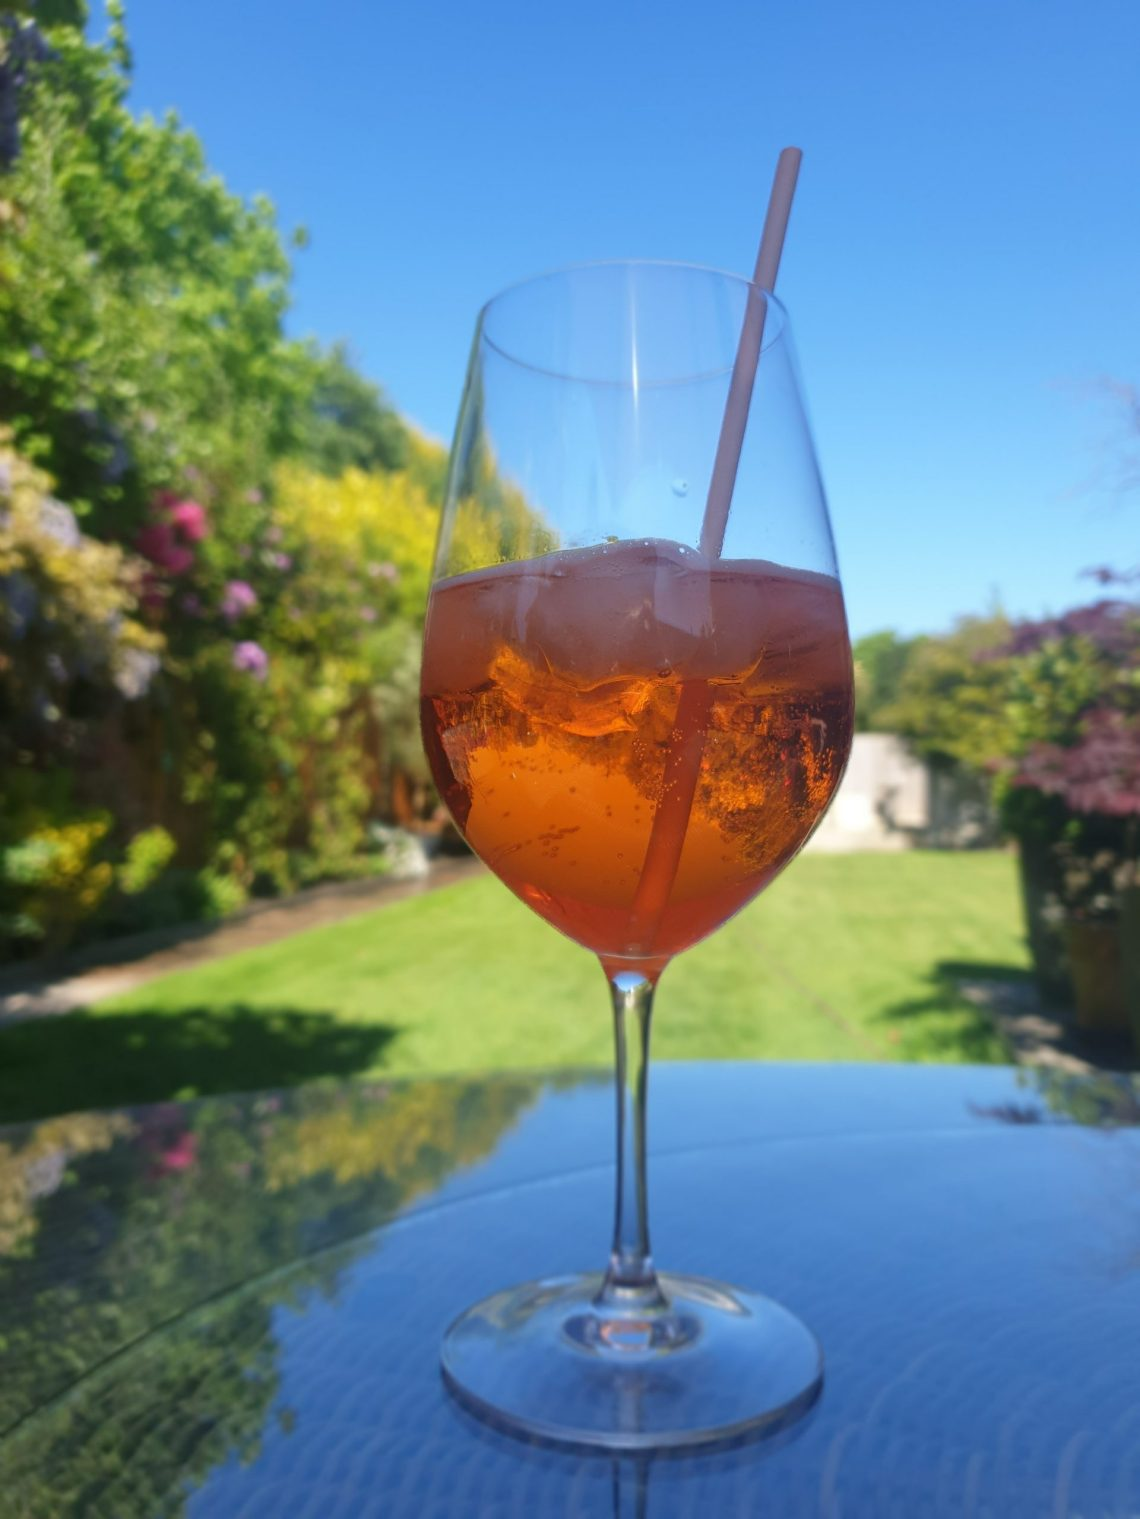 An Aperol Spritz cocktail with a garden scene in the background.